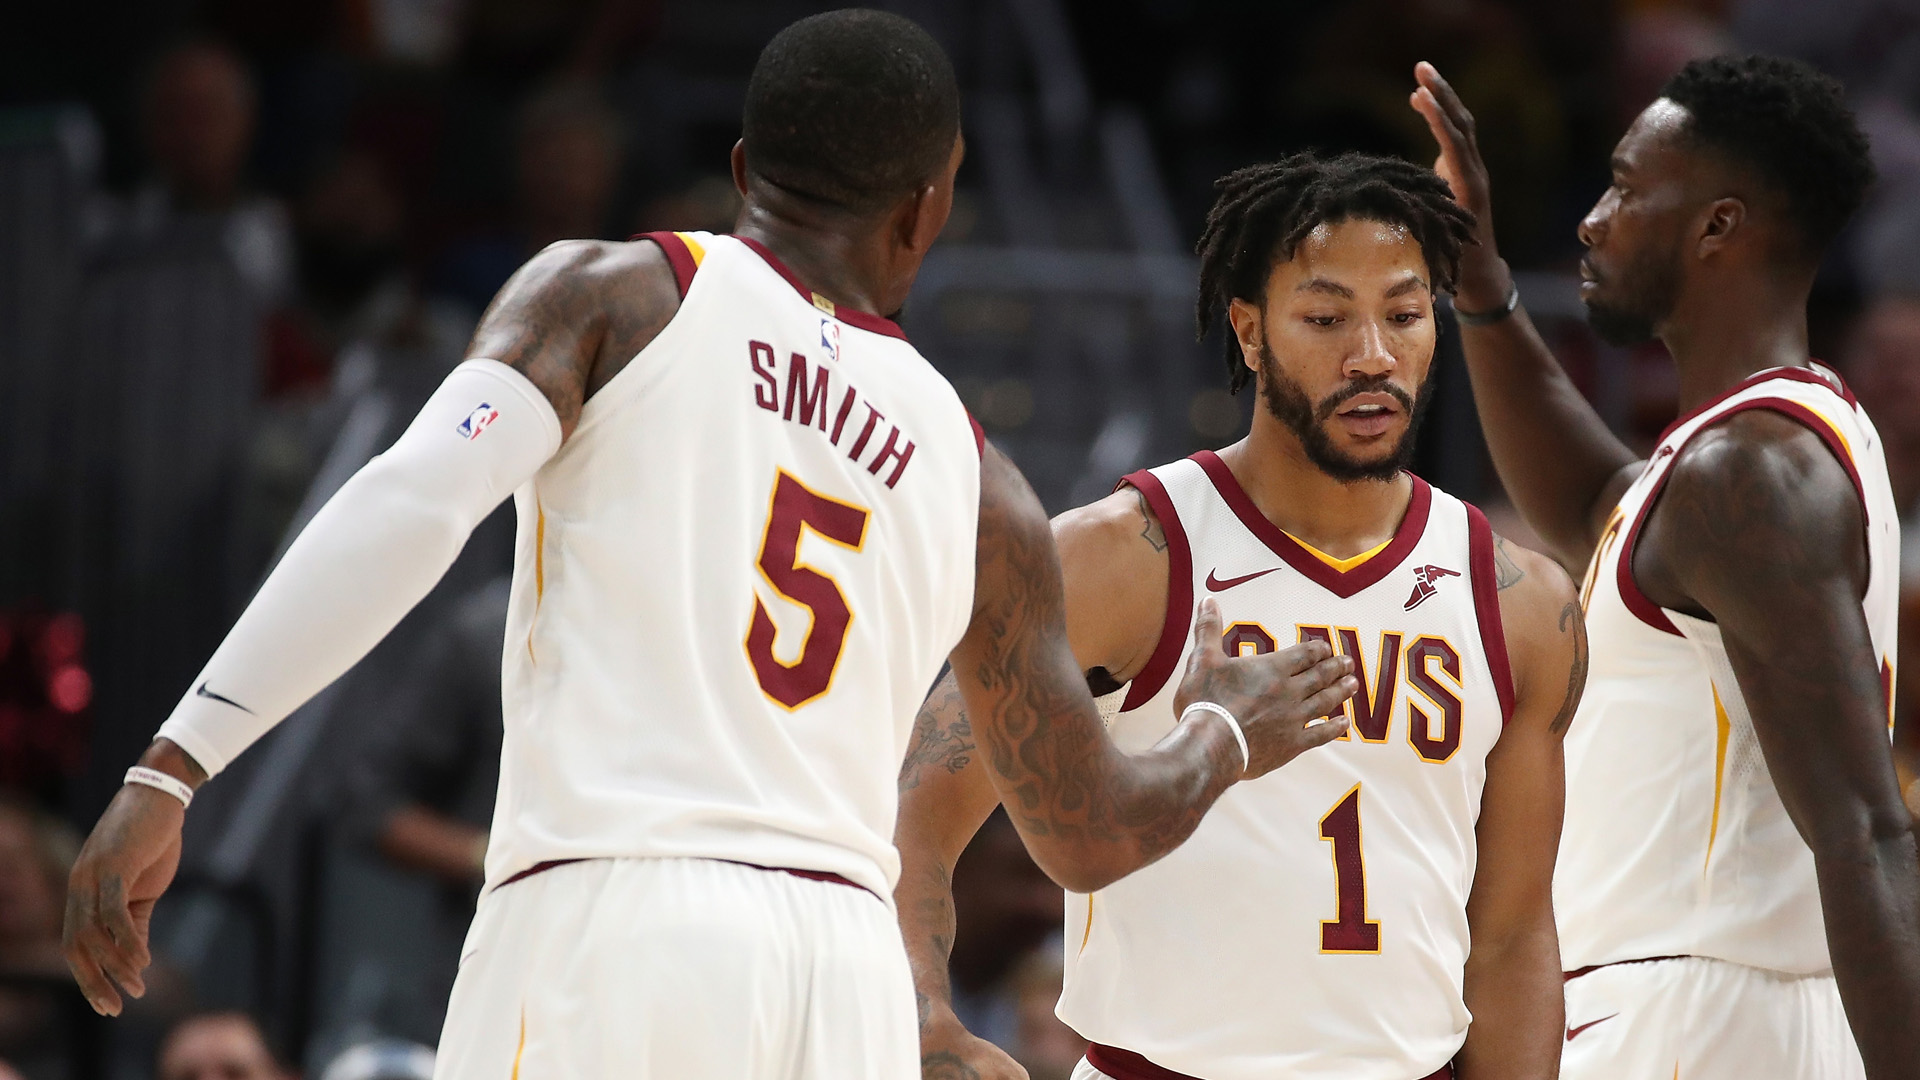 Derrick Rose prefers playing for Cavs over Knicks: 'Here I got freedom'